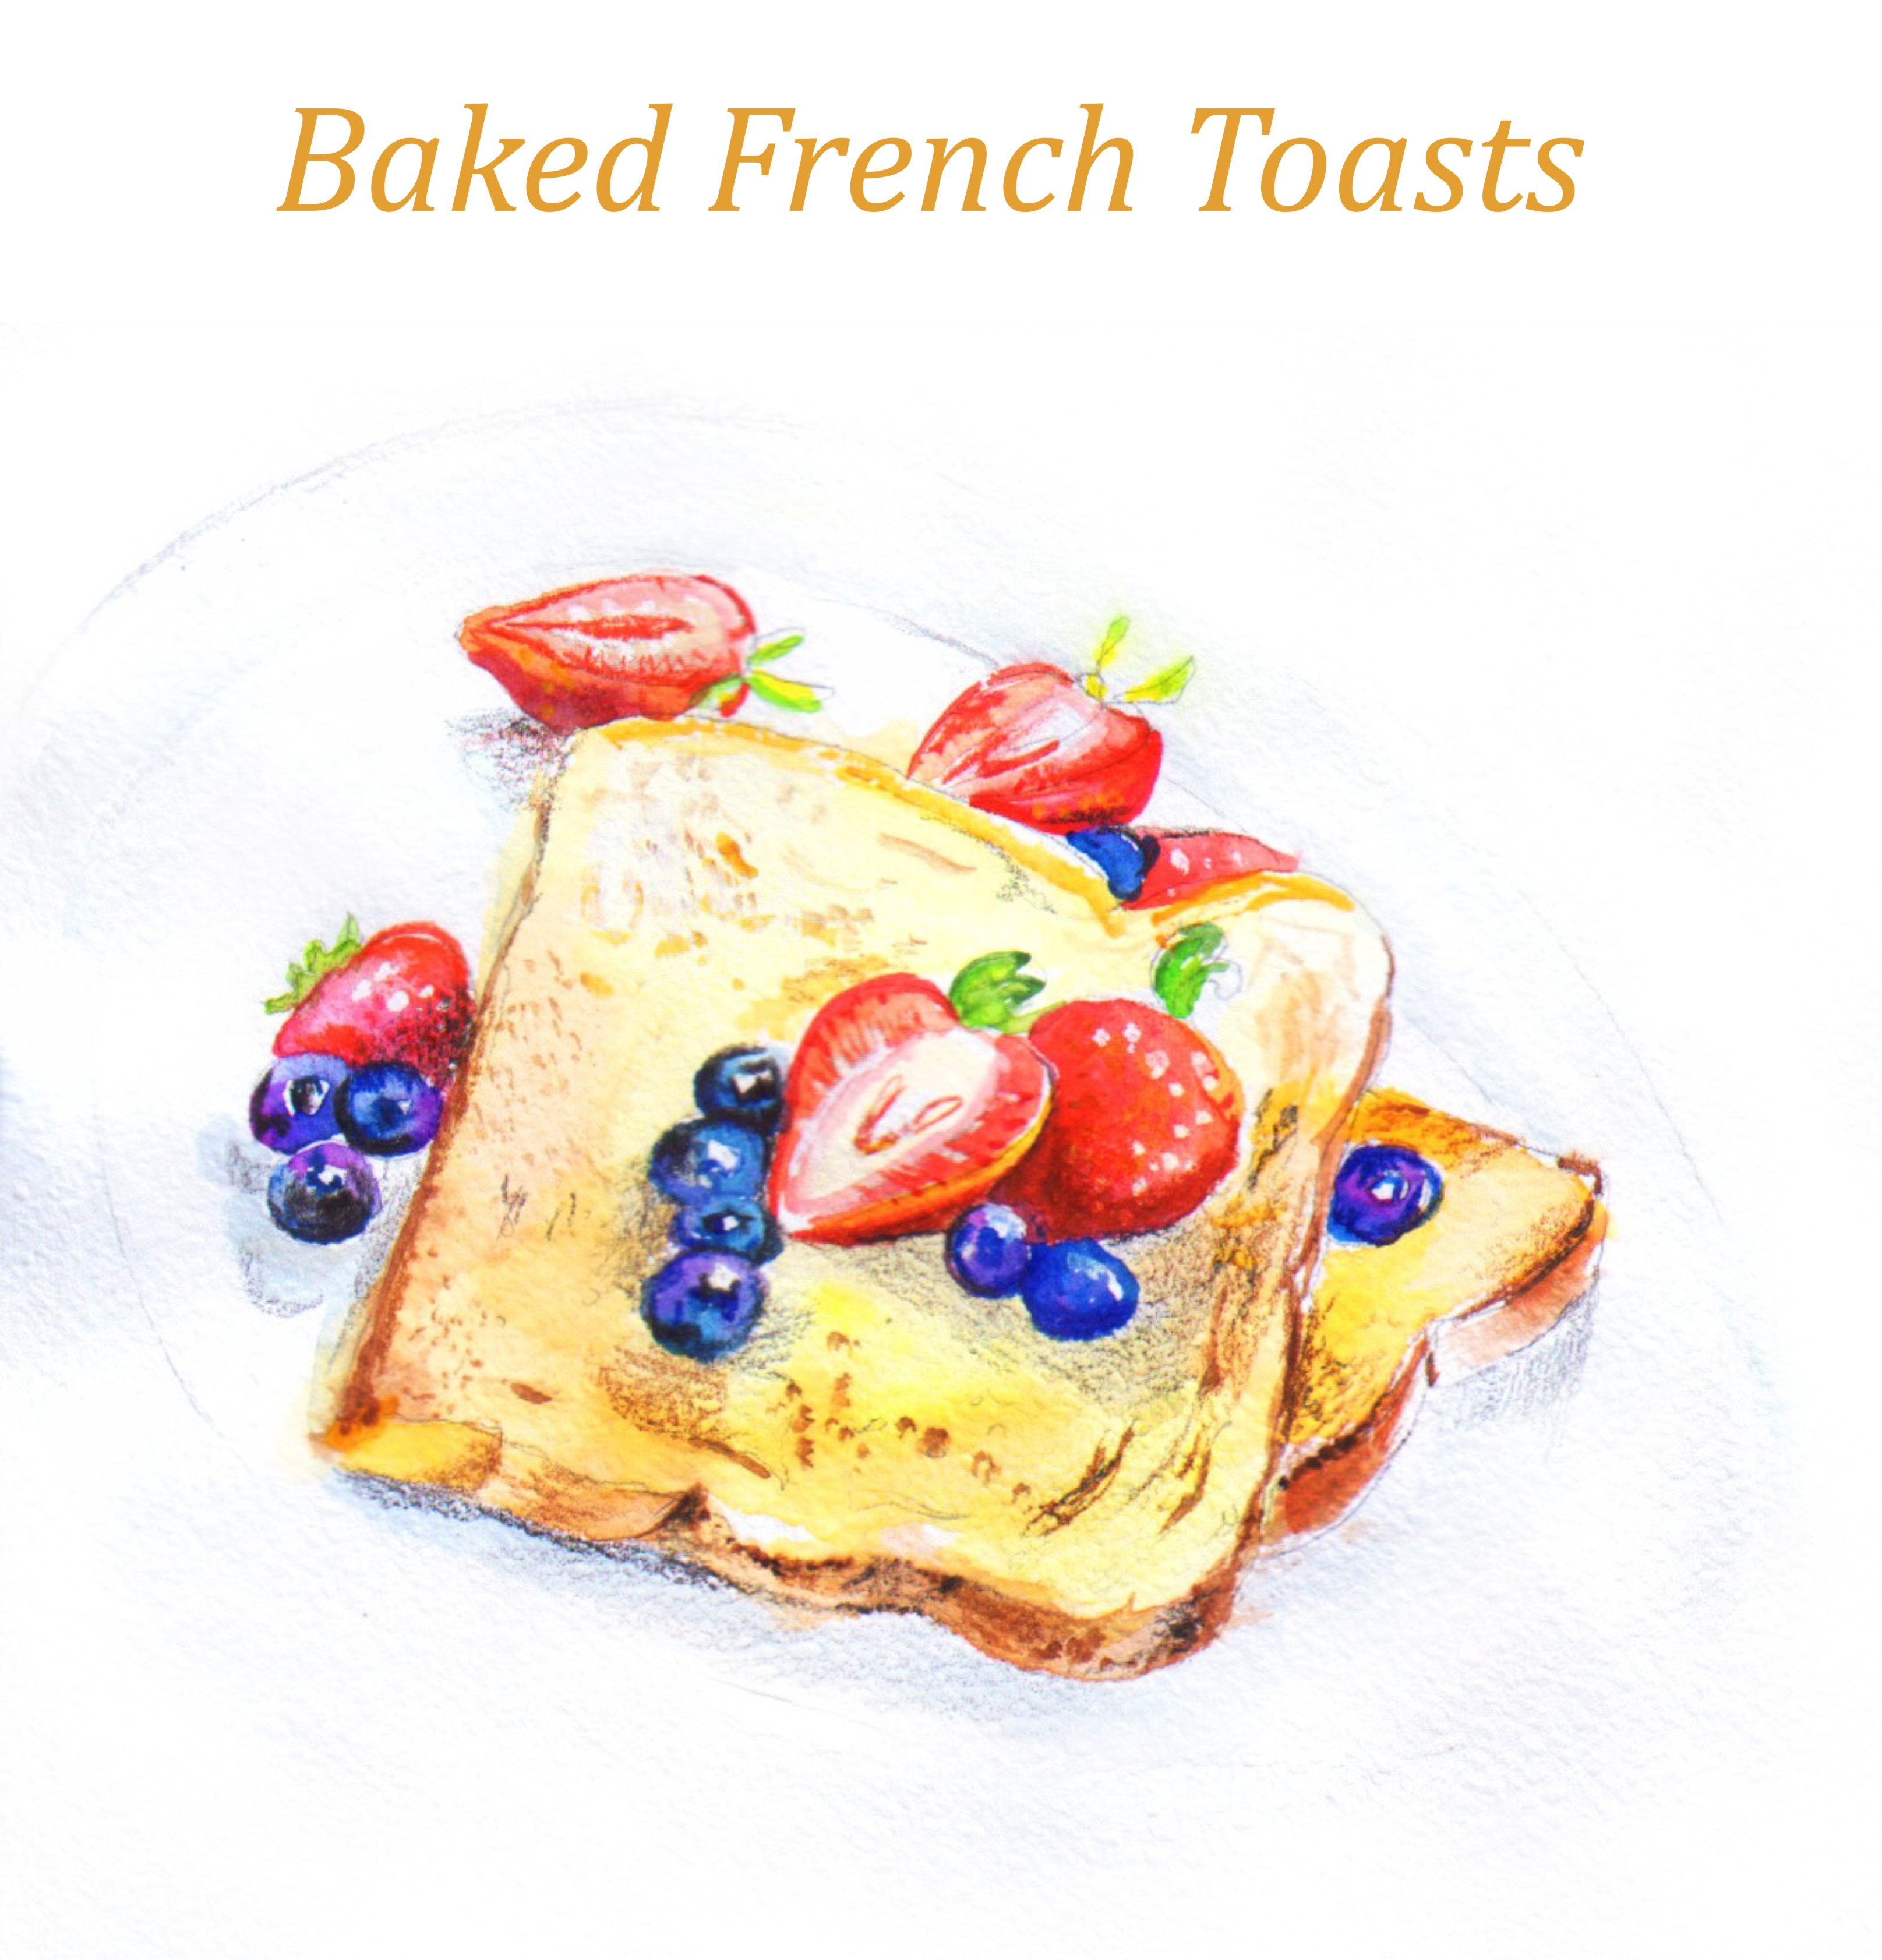 Baked French Toasts